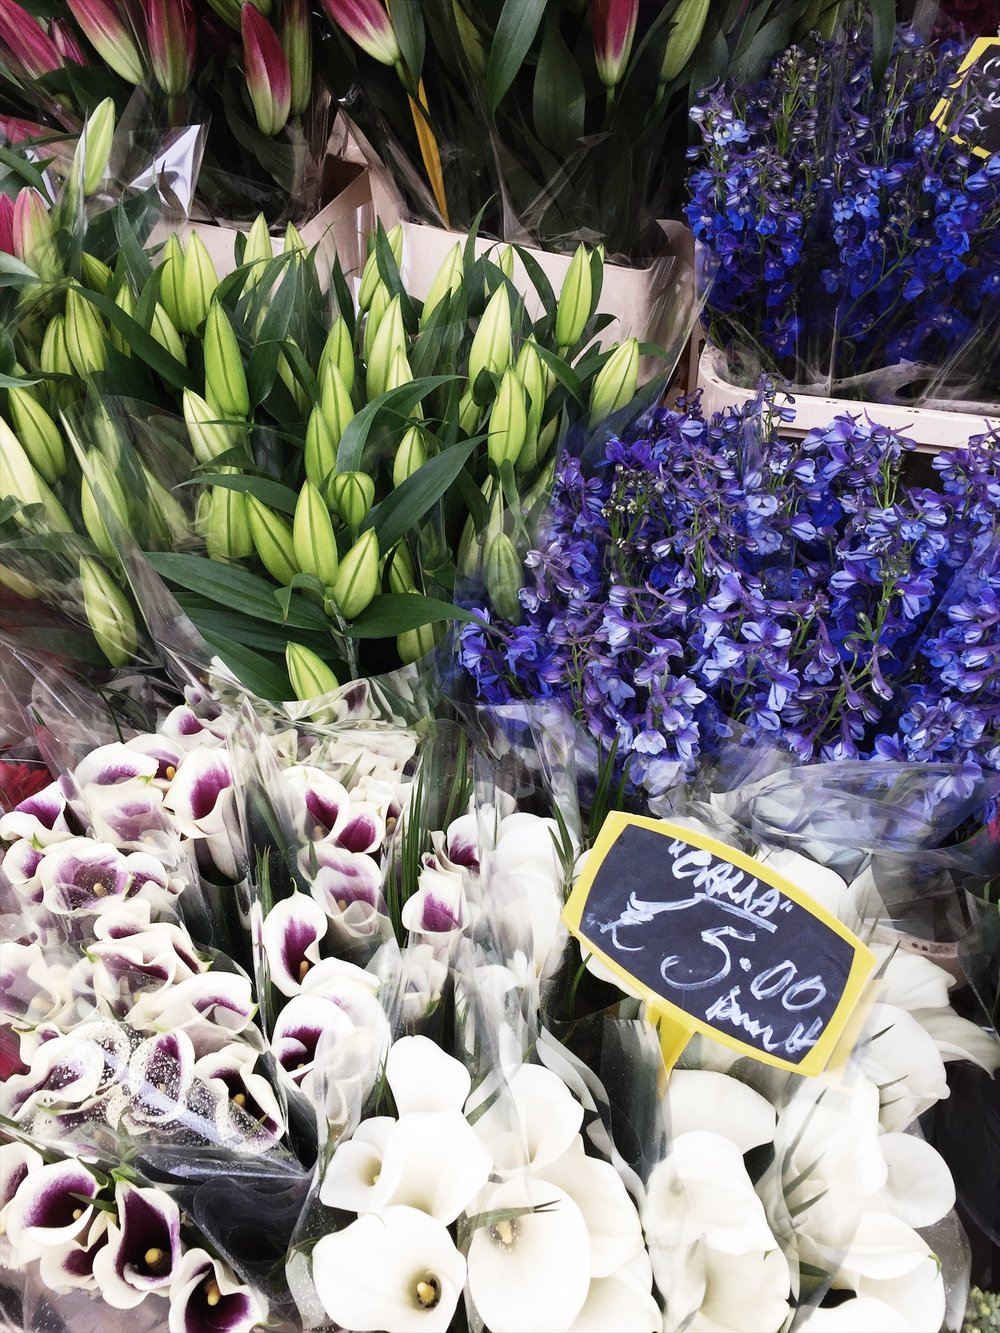 The Beaux Journals @ Columbia Flower Market in London